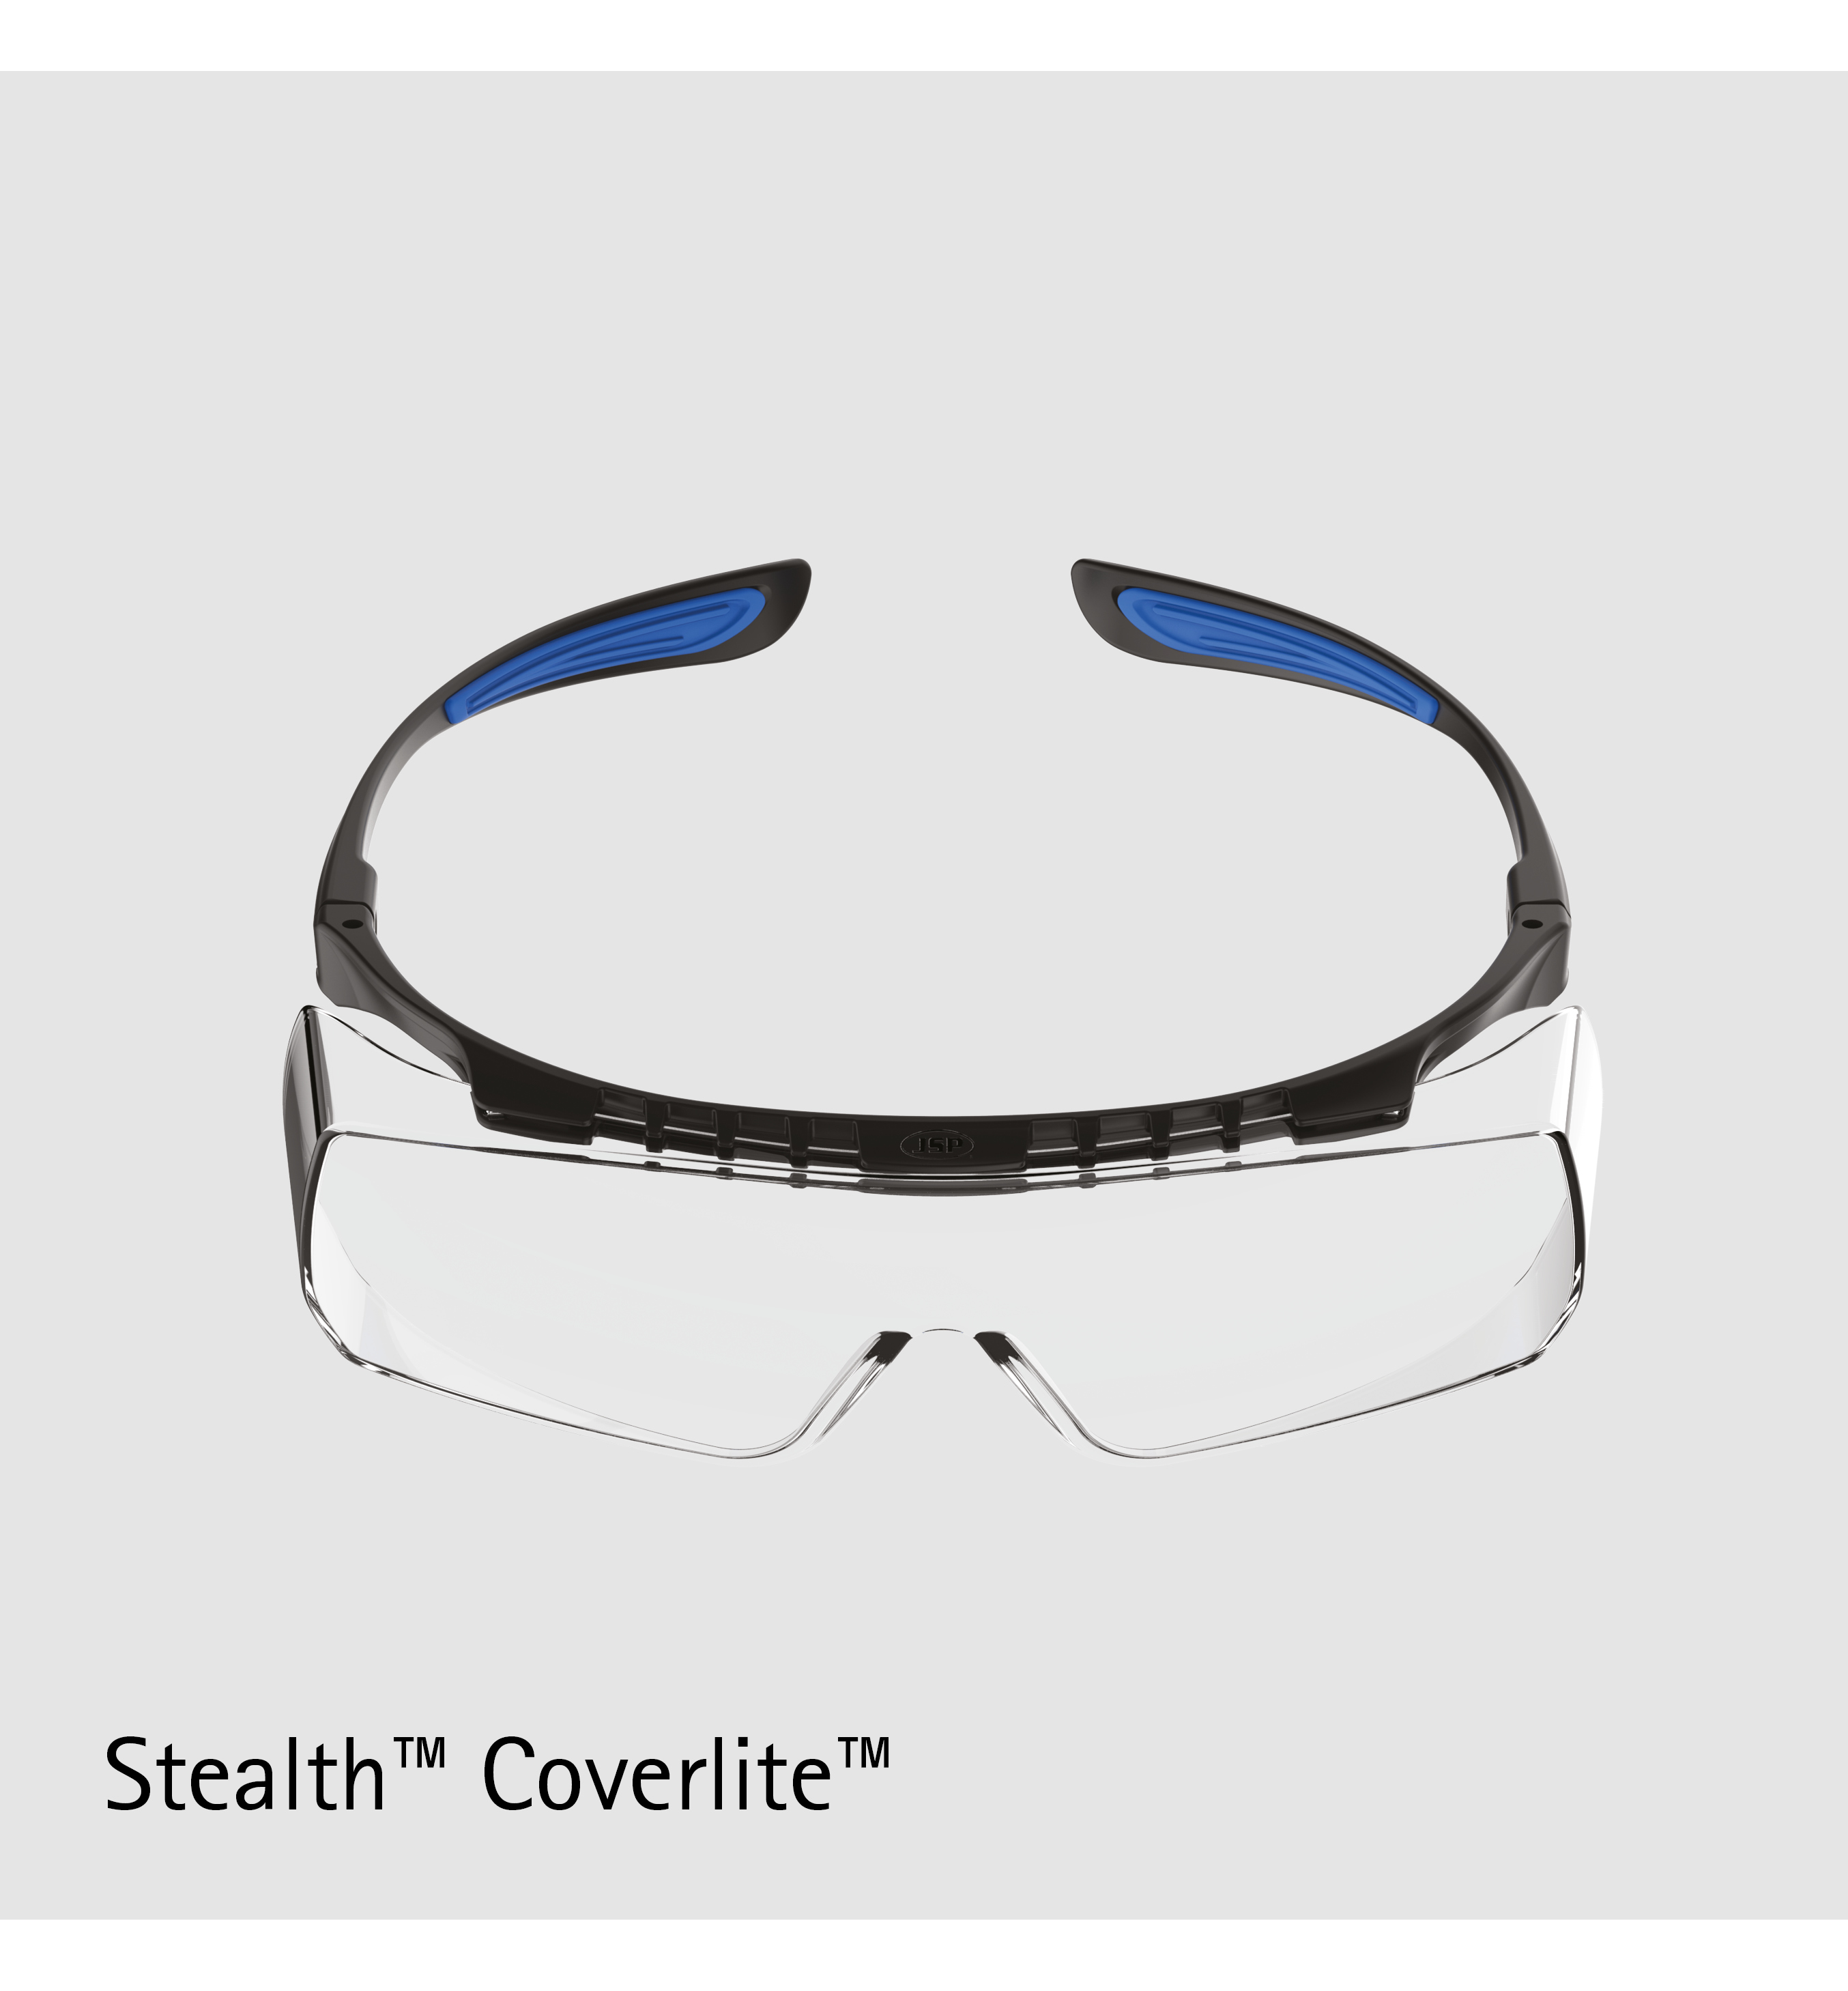 Stealth™ Coverlite™